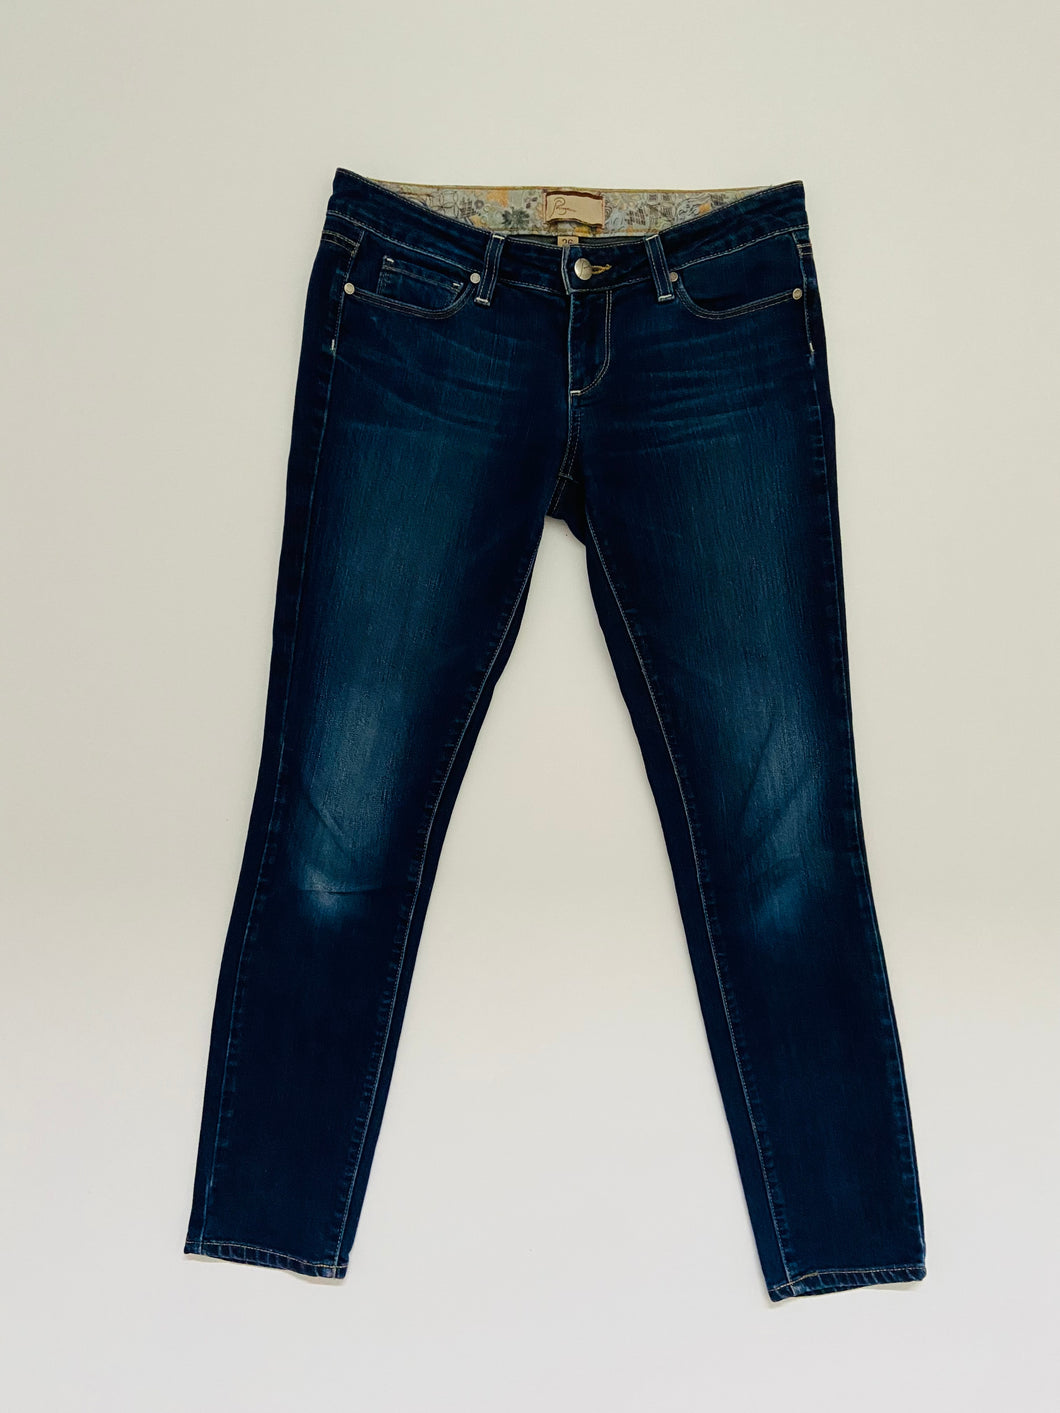 Paige Denim Low Waist Size 26